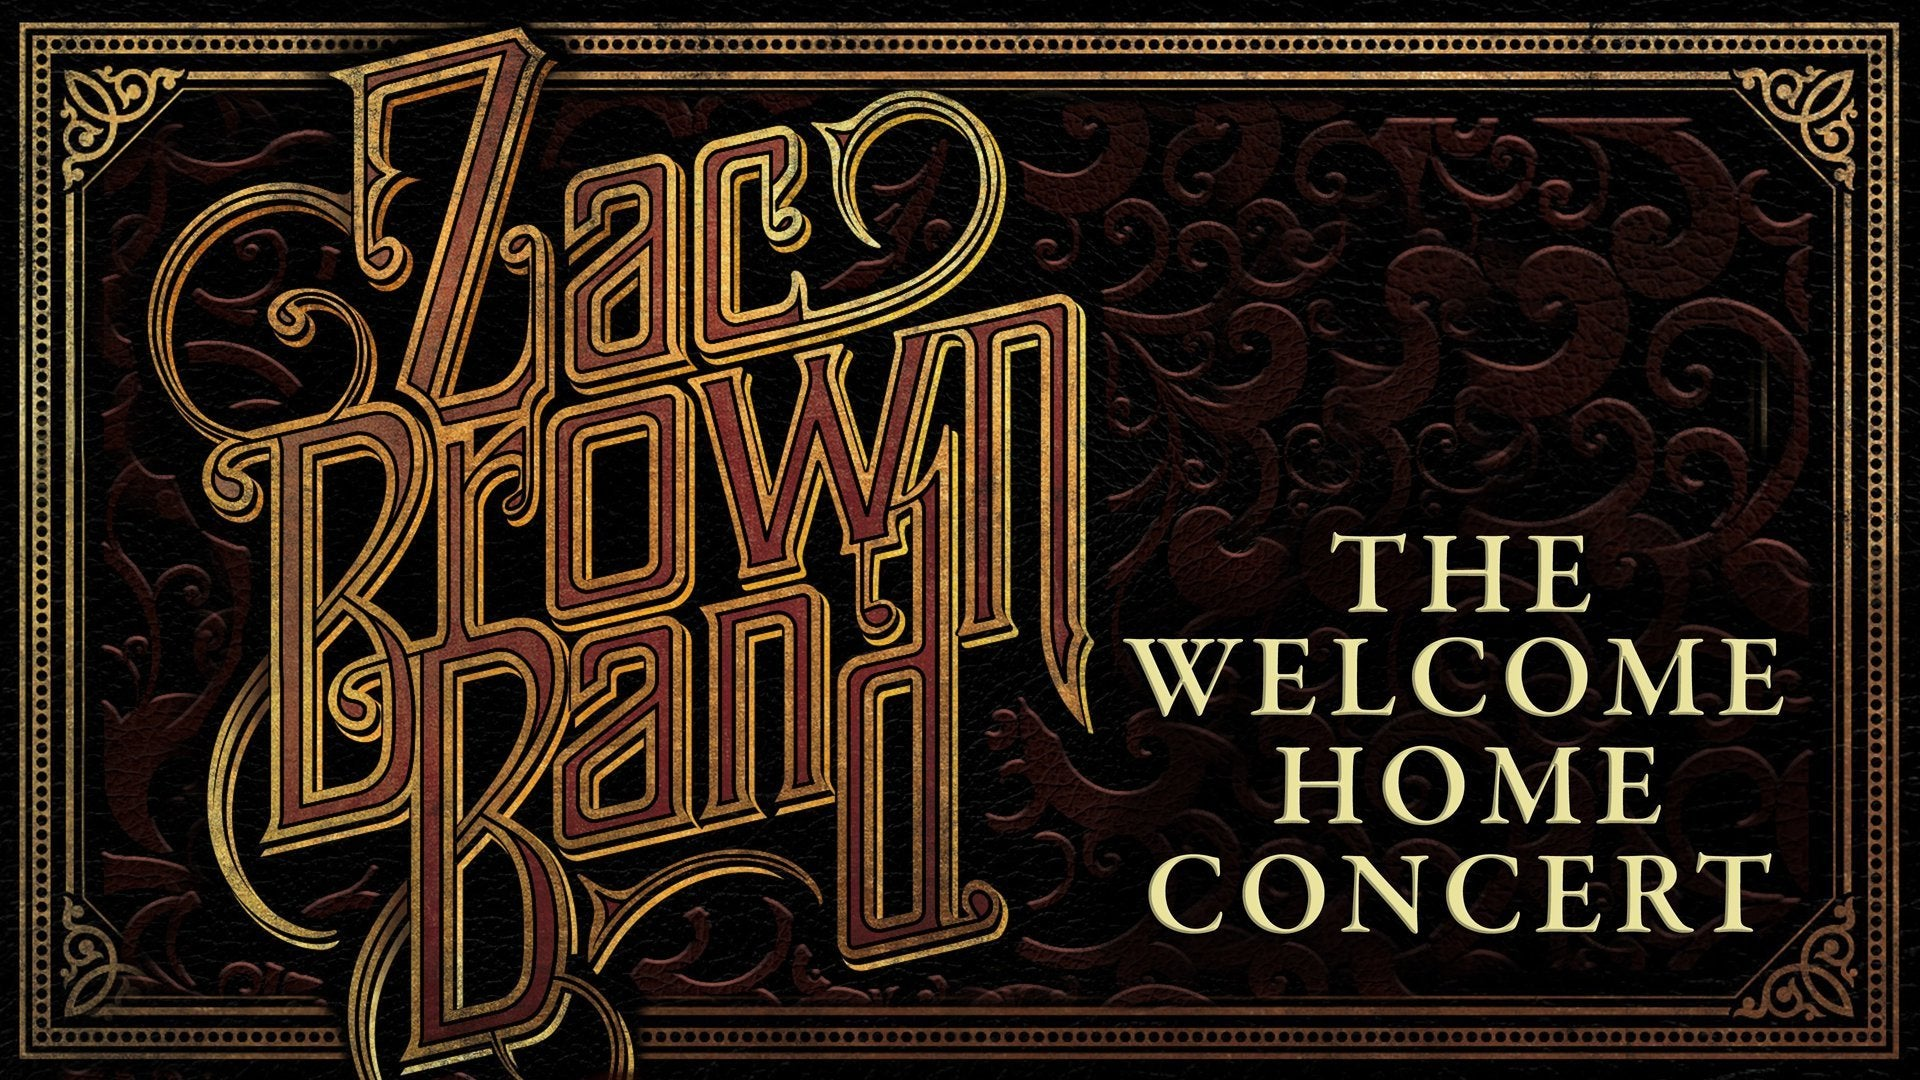 Zac Brown Band: The Welcome Home Concert